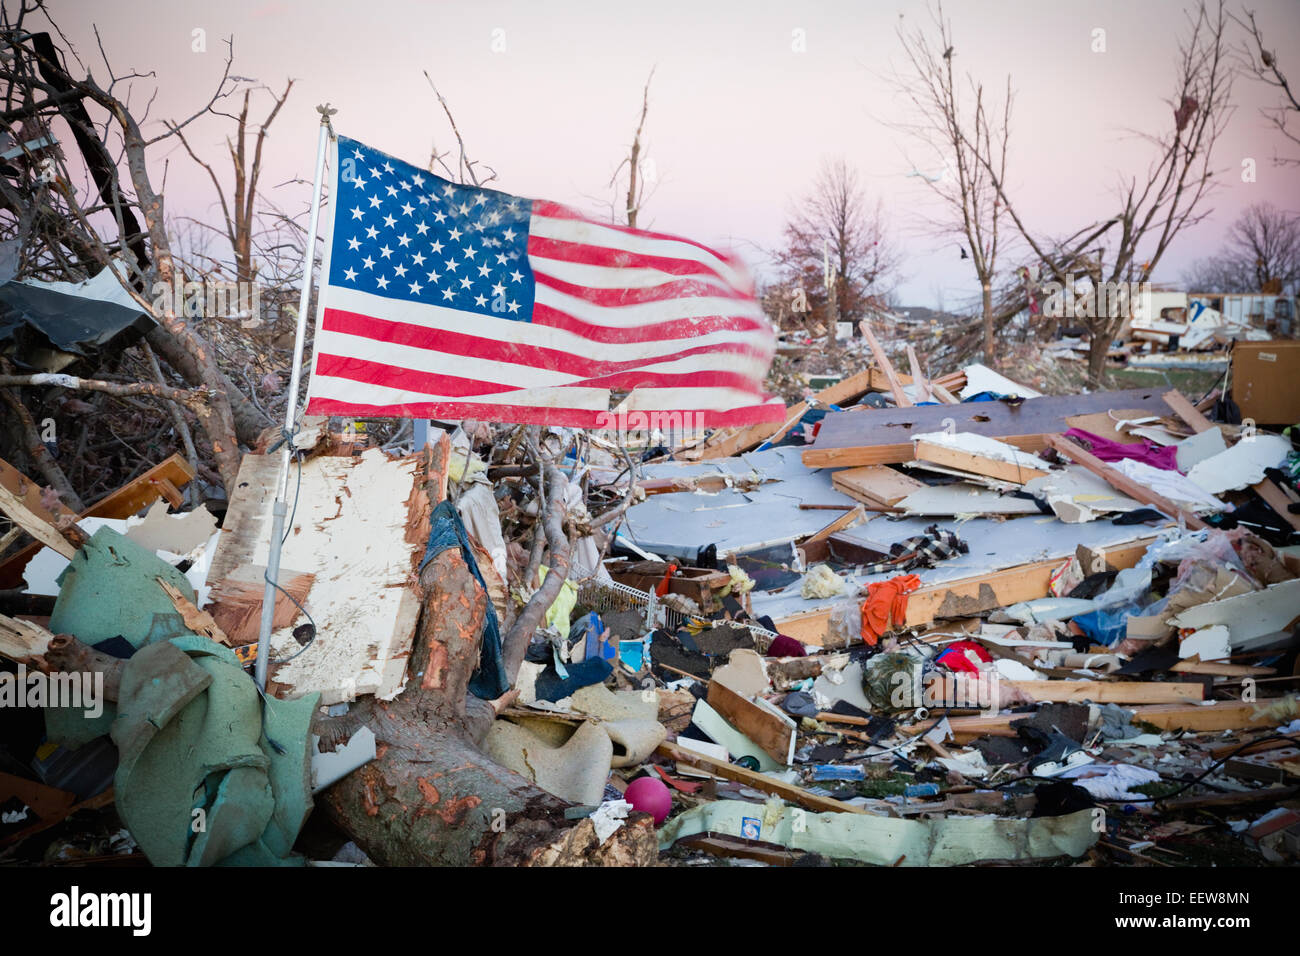 American flag in debris after tornado - Stock Image